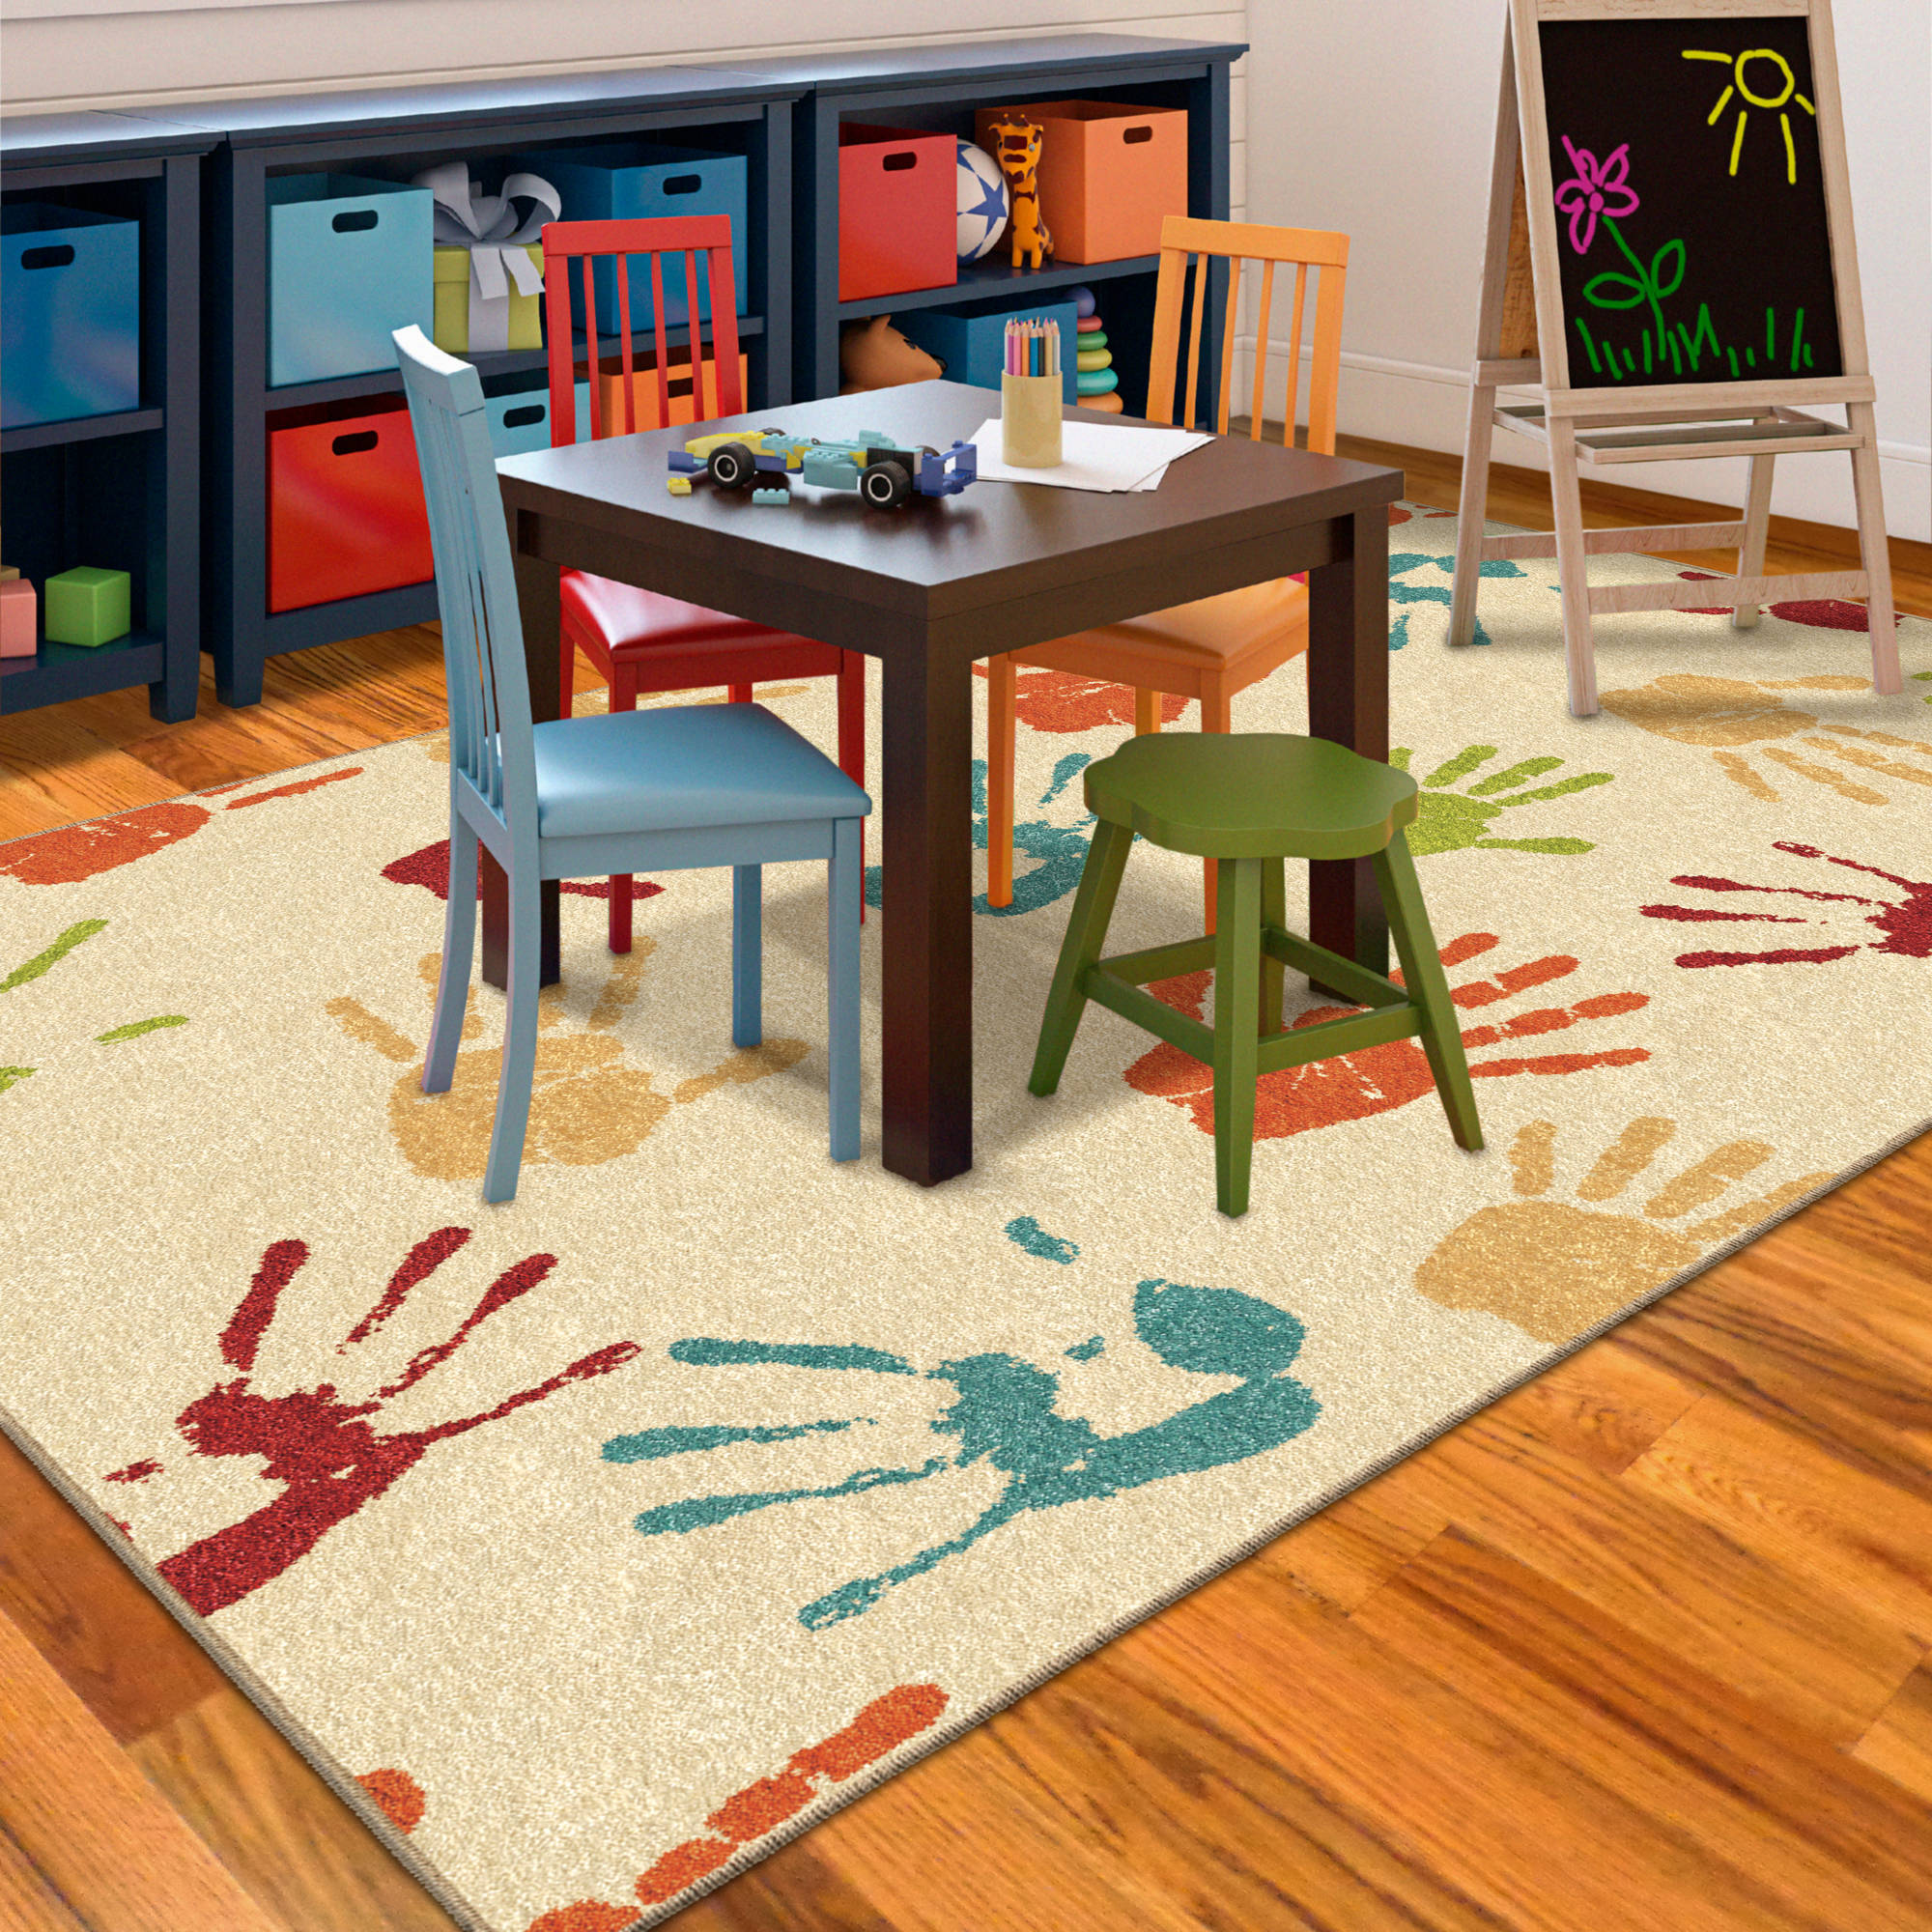 orian handprints fun kids area rug walmart com rh walmart com kids room area rugs with free shipping Family Room Area Rugs